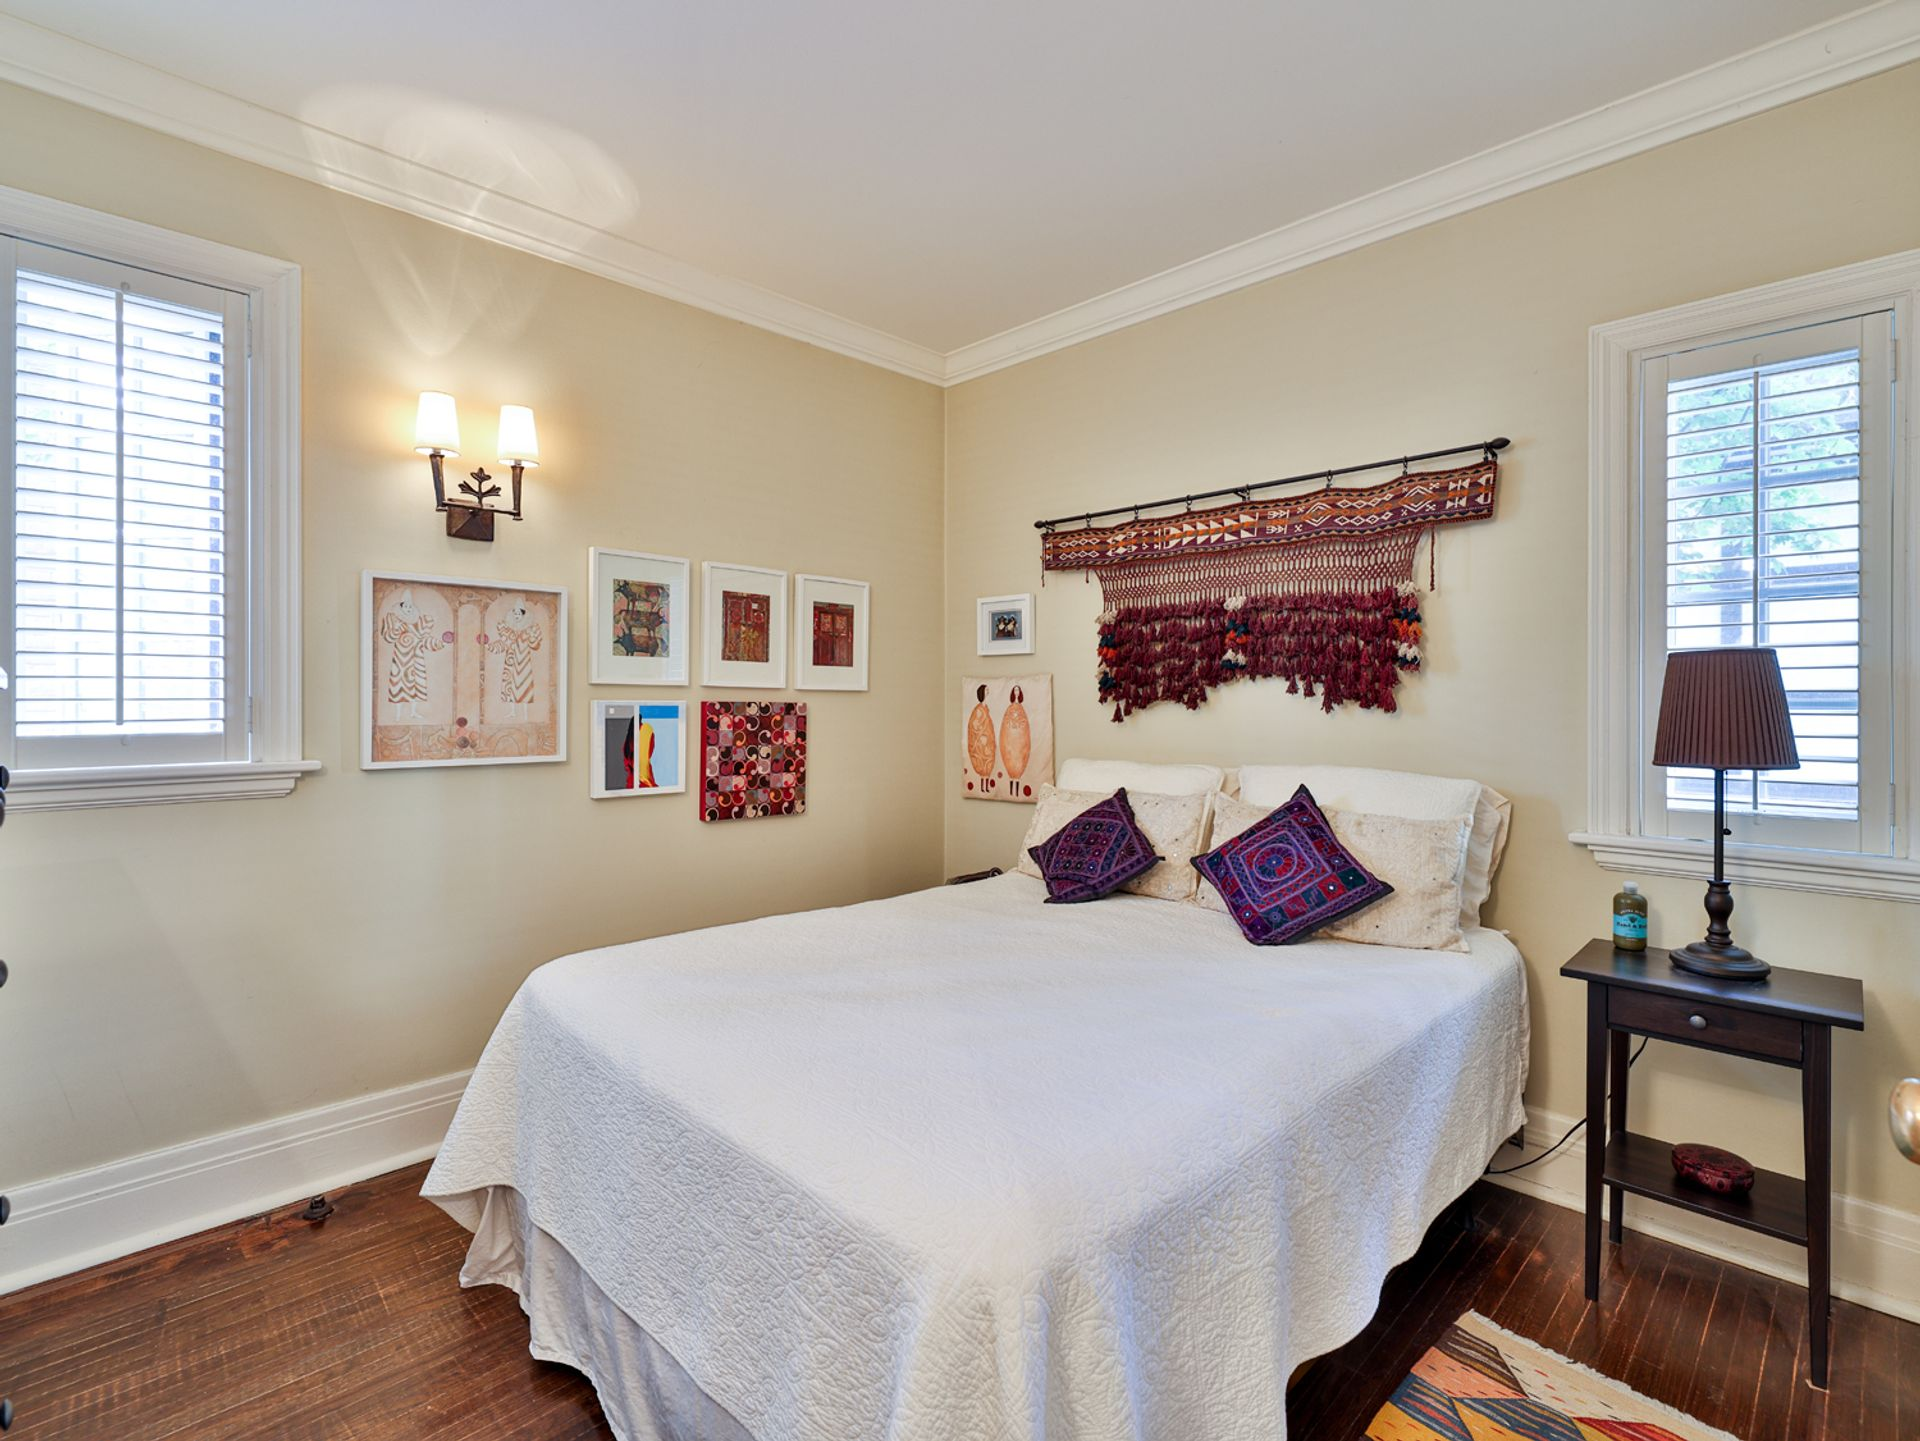 Bedroom at 305 - 150 St. Clair Avenue W, Yonge-St. Clair, Toronto